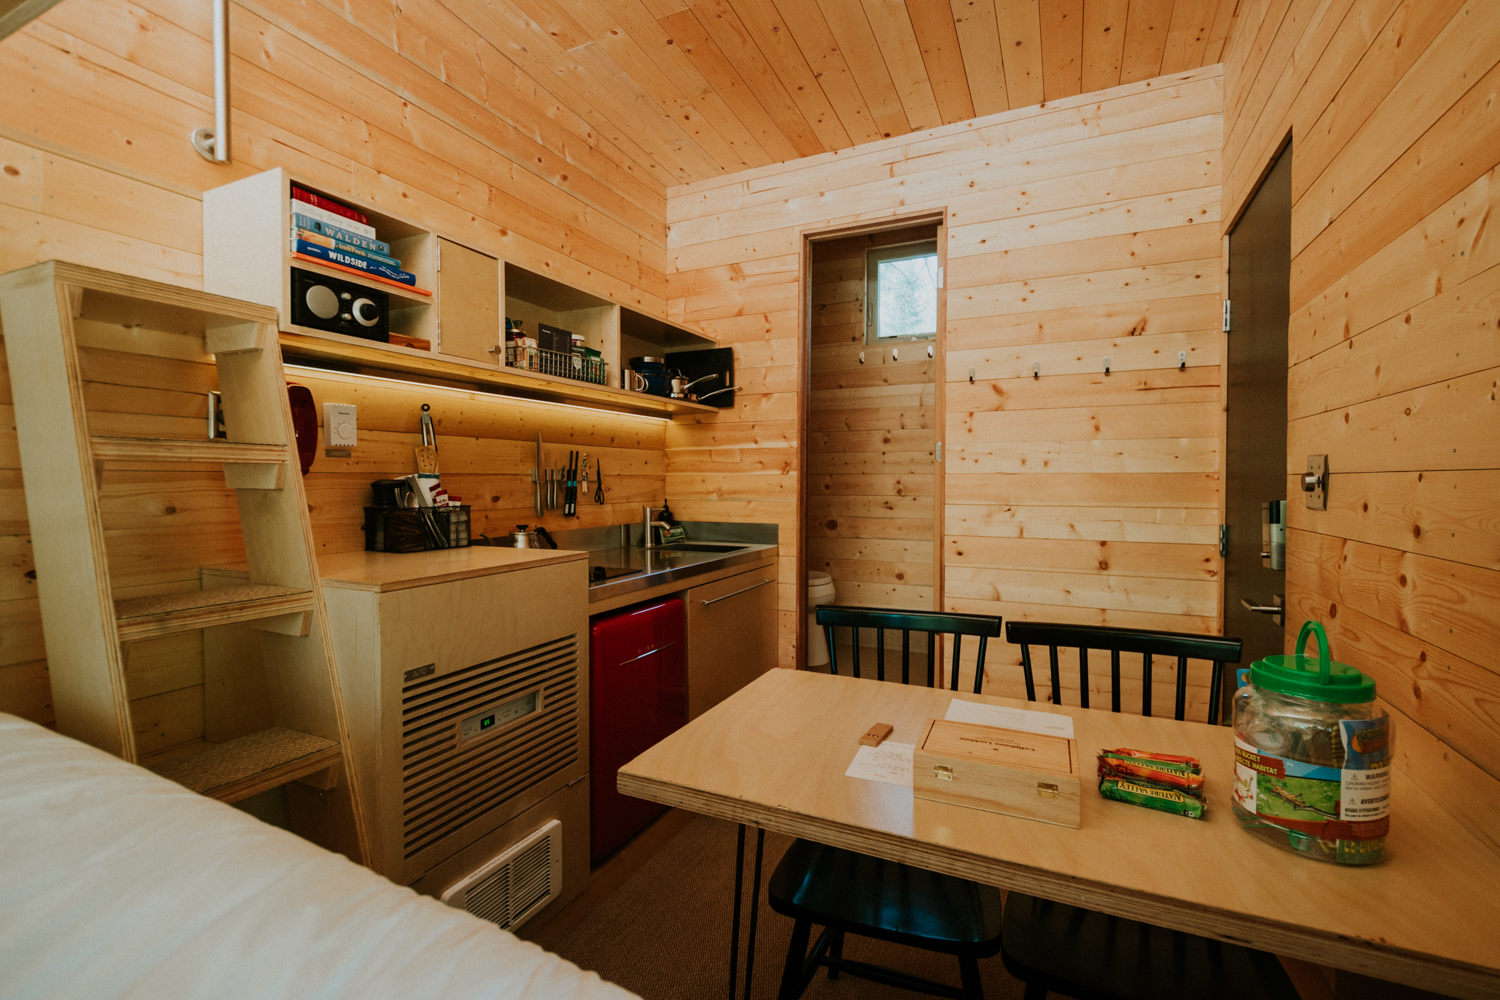 "Before you ask - yes, you've likely seen The Getaway House advertised on 'insert social media platform here.' The adorable little cabins have gone a bit viral online, so we were pleased as punch to be invited to try out their Glenwood, WA cabin (named Bernice!) for the perfect staycation vacation. While you may have initially discovered this getaway online, that's about as much internet time as you'll have if you end up visiting. It's a truly unplugged/screen-free experience, whose whole business model is built on socially distancing (even before the pandemic). There's no wifi or cell service, which allows you to focus solely on those around you and - of course, the great outdoors. One of several cabins throughout the country, Bernice is nestled between Mt. Hood and Mt. Adams, a four hour drive from the Seattle/Tacoma area. While it doesn't have a nearby water source for children to play in, the location made up for it with its incredibly grand vistas. This Getaway House is well-maintained, gorgeous and has all of the things we have come to love in contemporary experiences. And don't worry, you can post about it as soon as you're back home. More info on booking and rates{&nbsp;}<a  href=""https://getaway.house/"" target=""_blank"" title=""https://getaway.house/"">online</a>. (Image:{&nbsp;}<a  href=""https://www.wisdomandcourage.com/"" target=""_blank"" title=""https://www.wisdomandcourage.com/"">Tash Haynes</a>{&nbsp;}/ Seattle Refined){&nbsp;}"